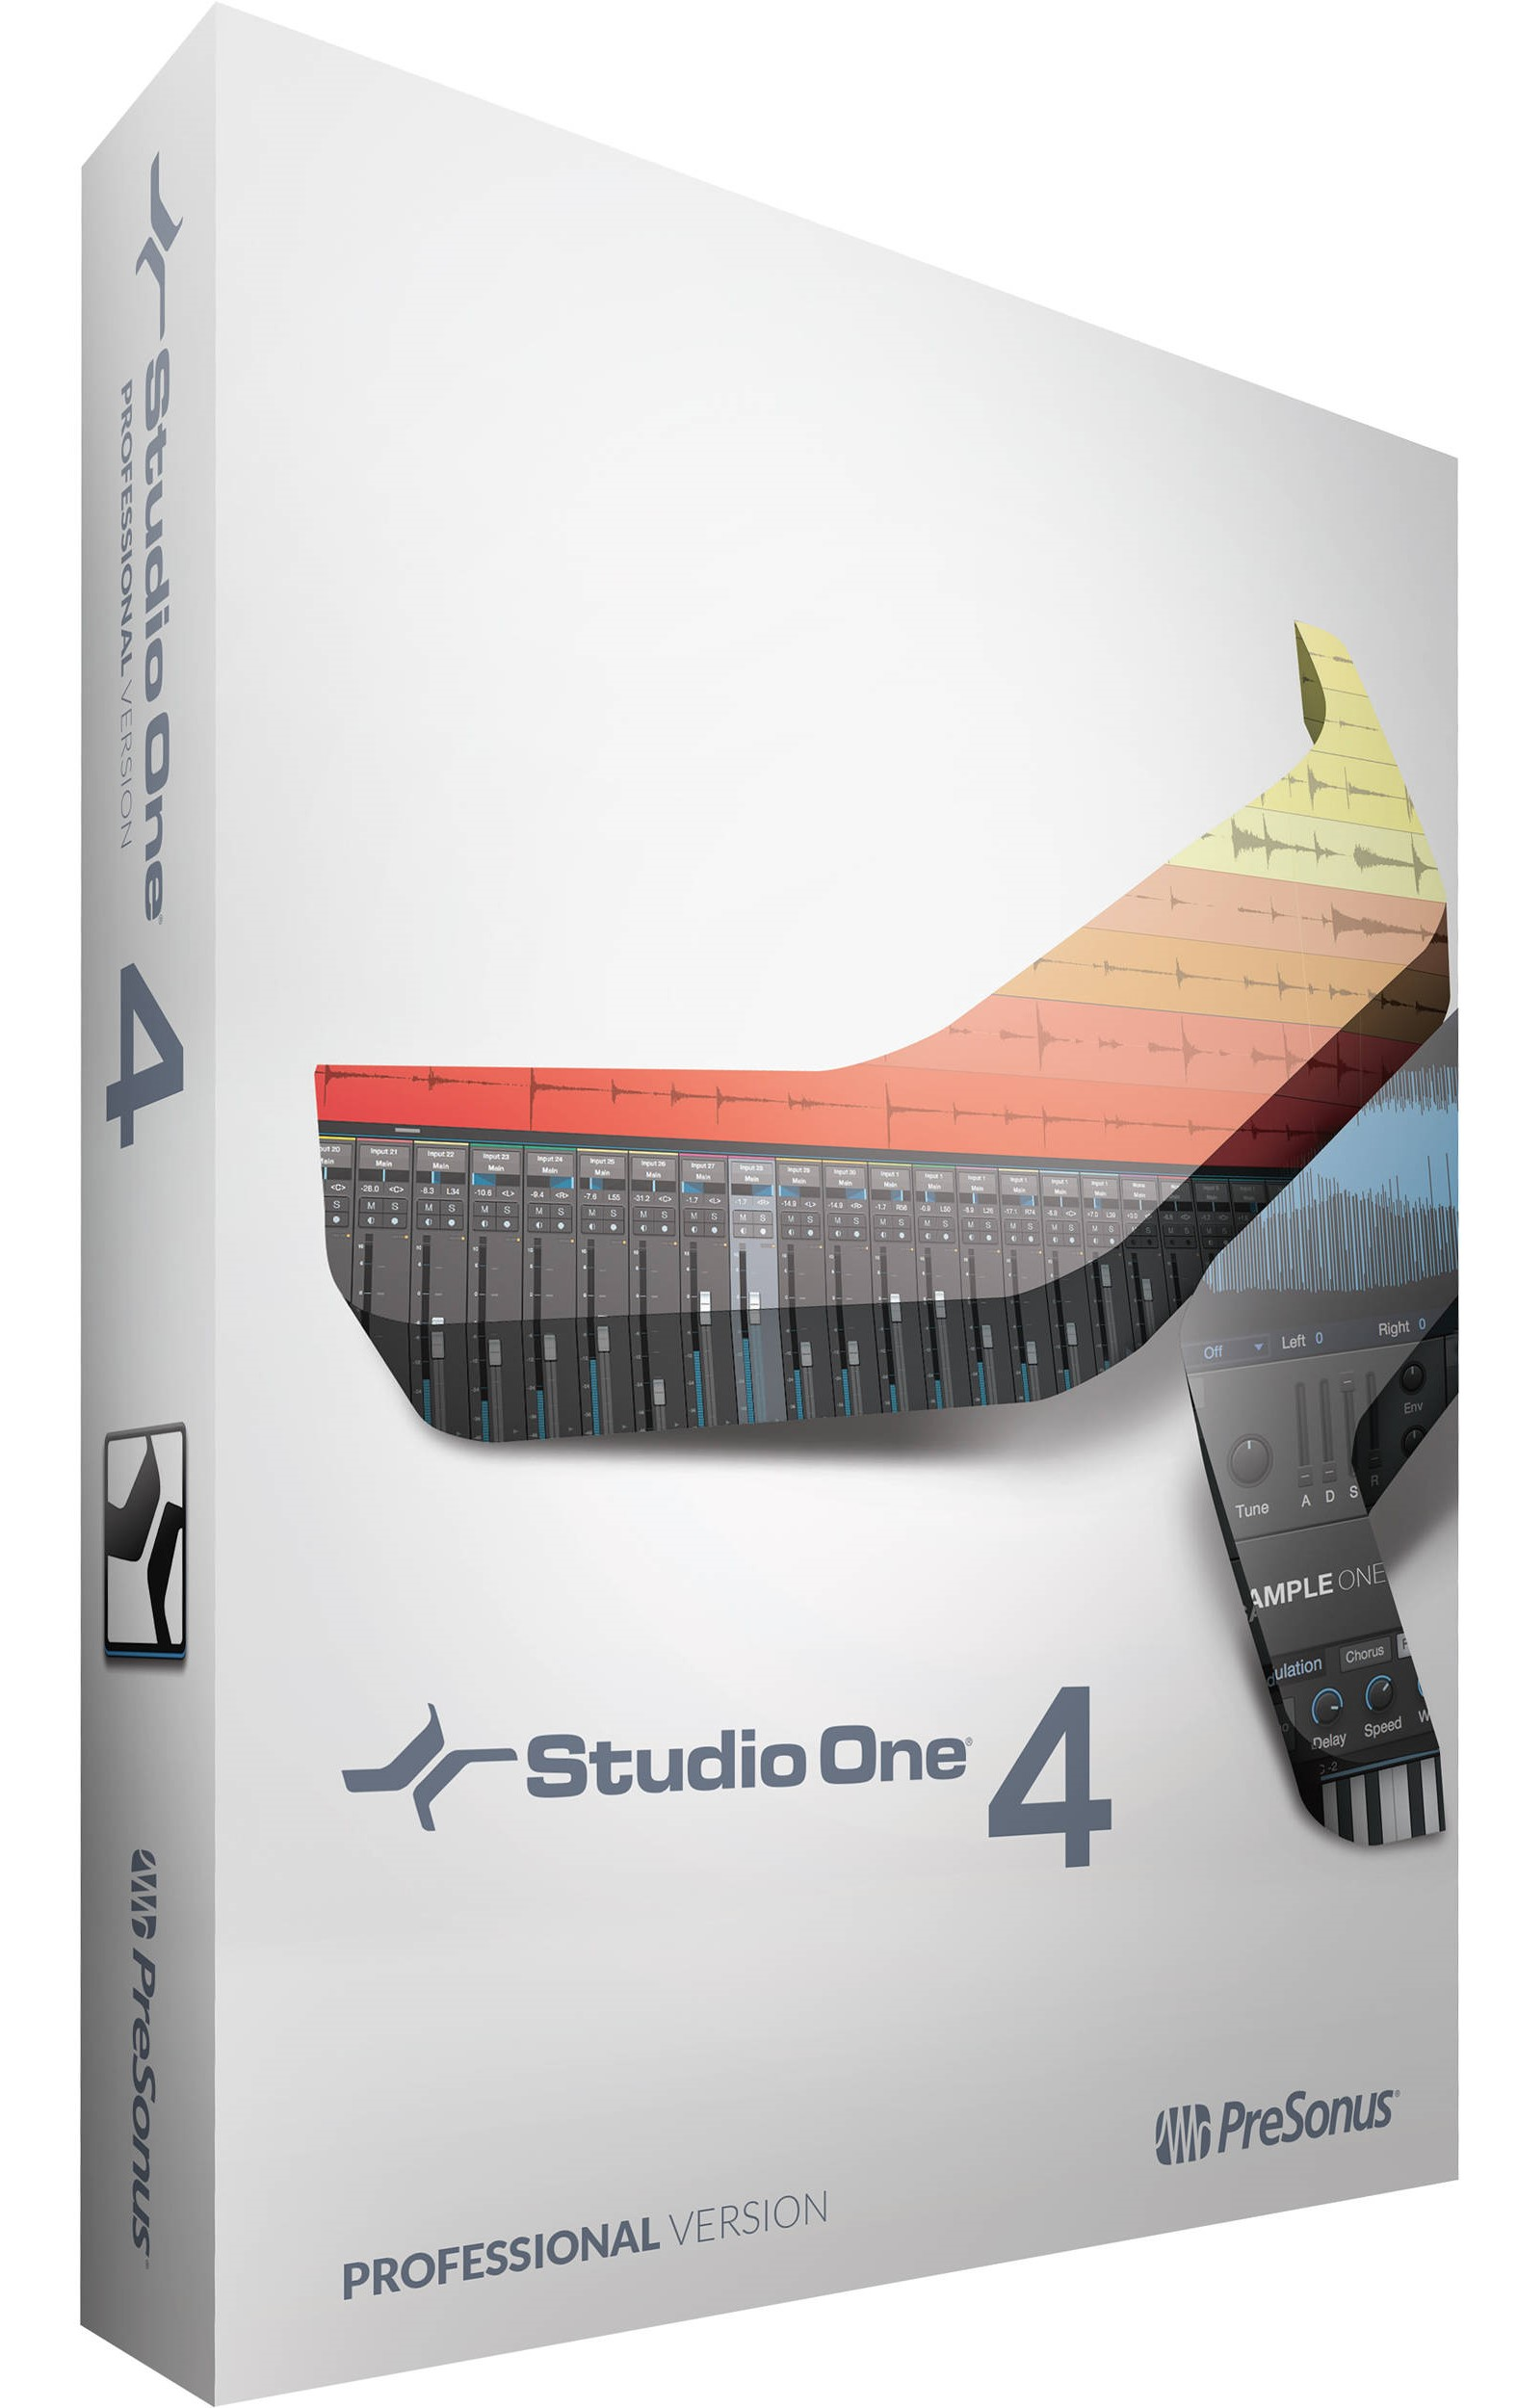 Studio One Pro 4 Crack Full Version Download is Here!